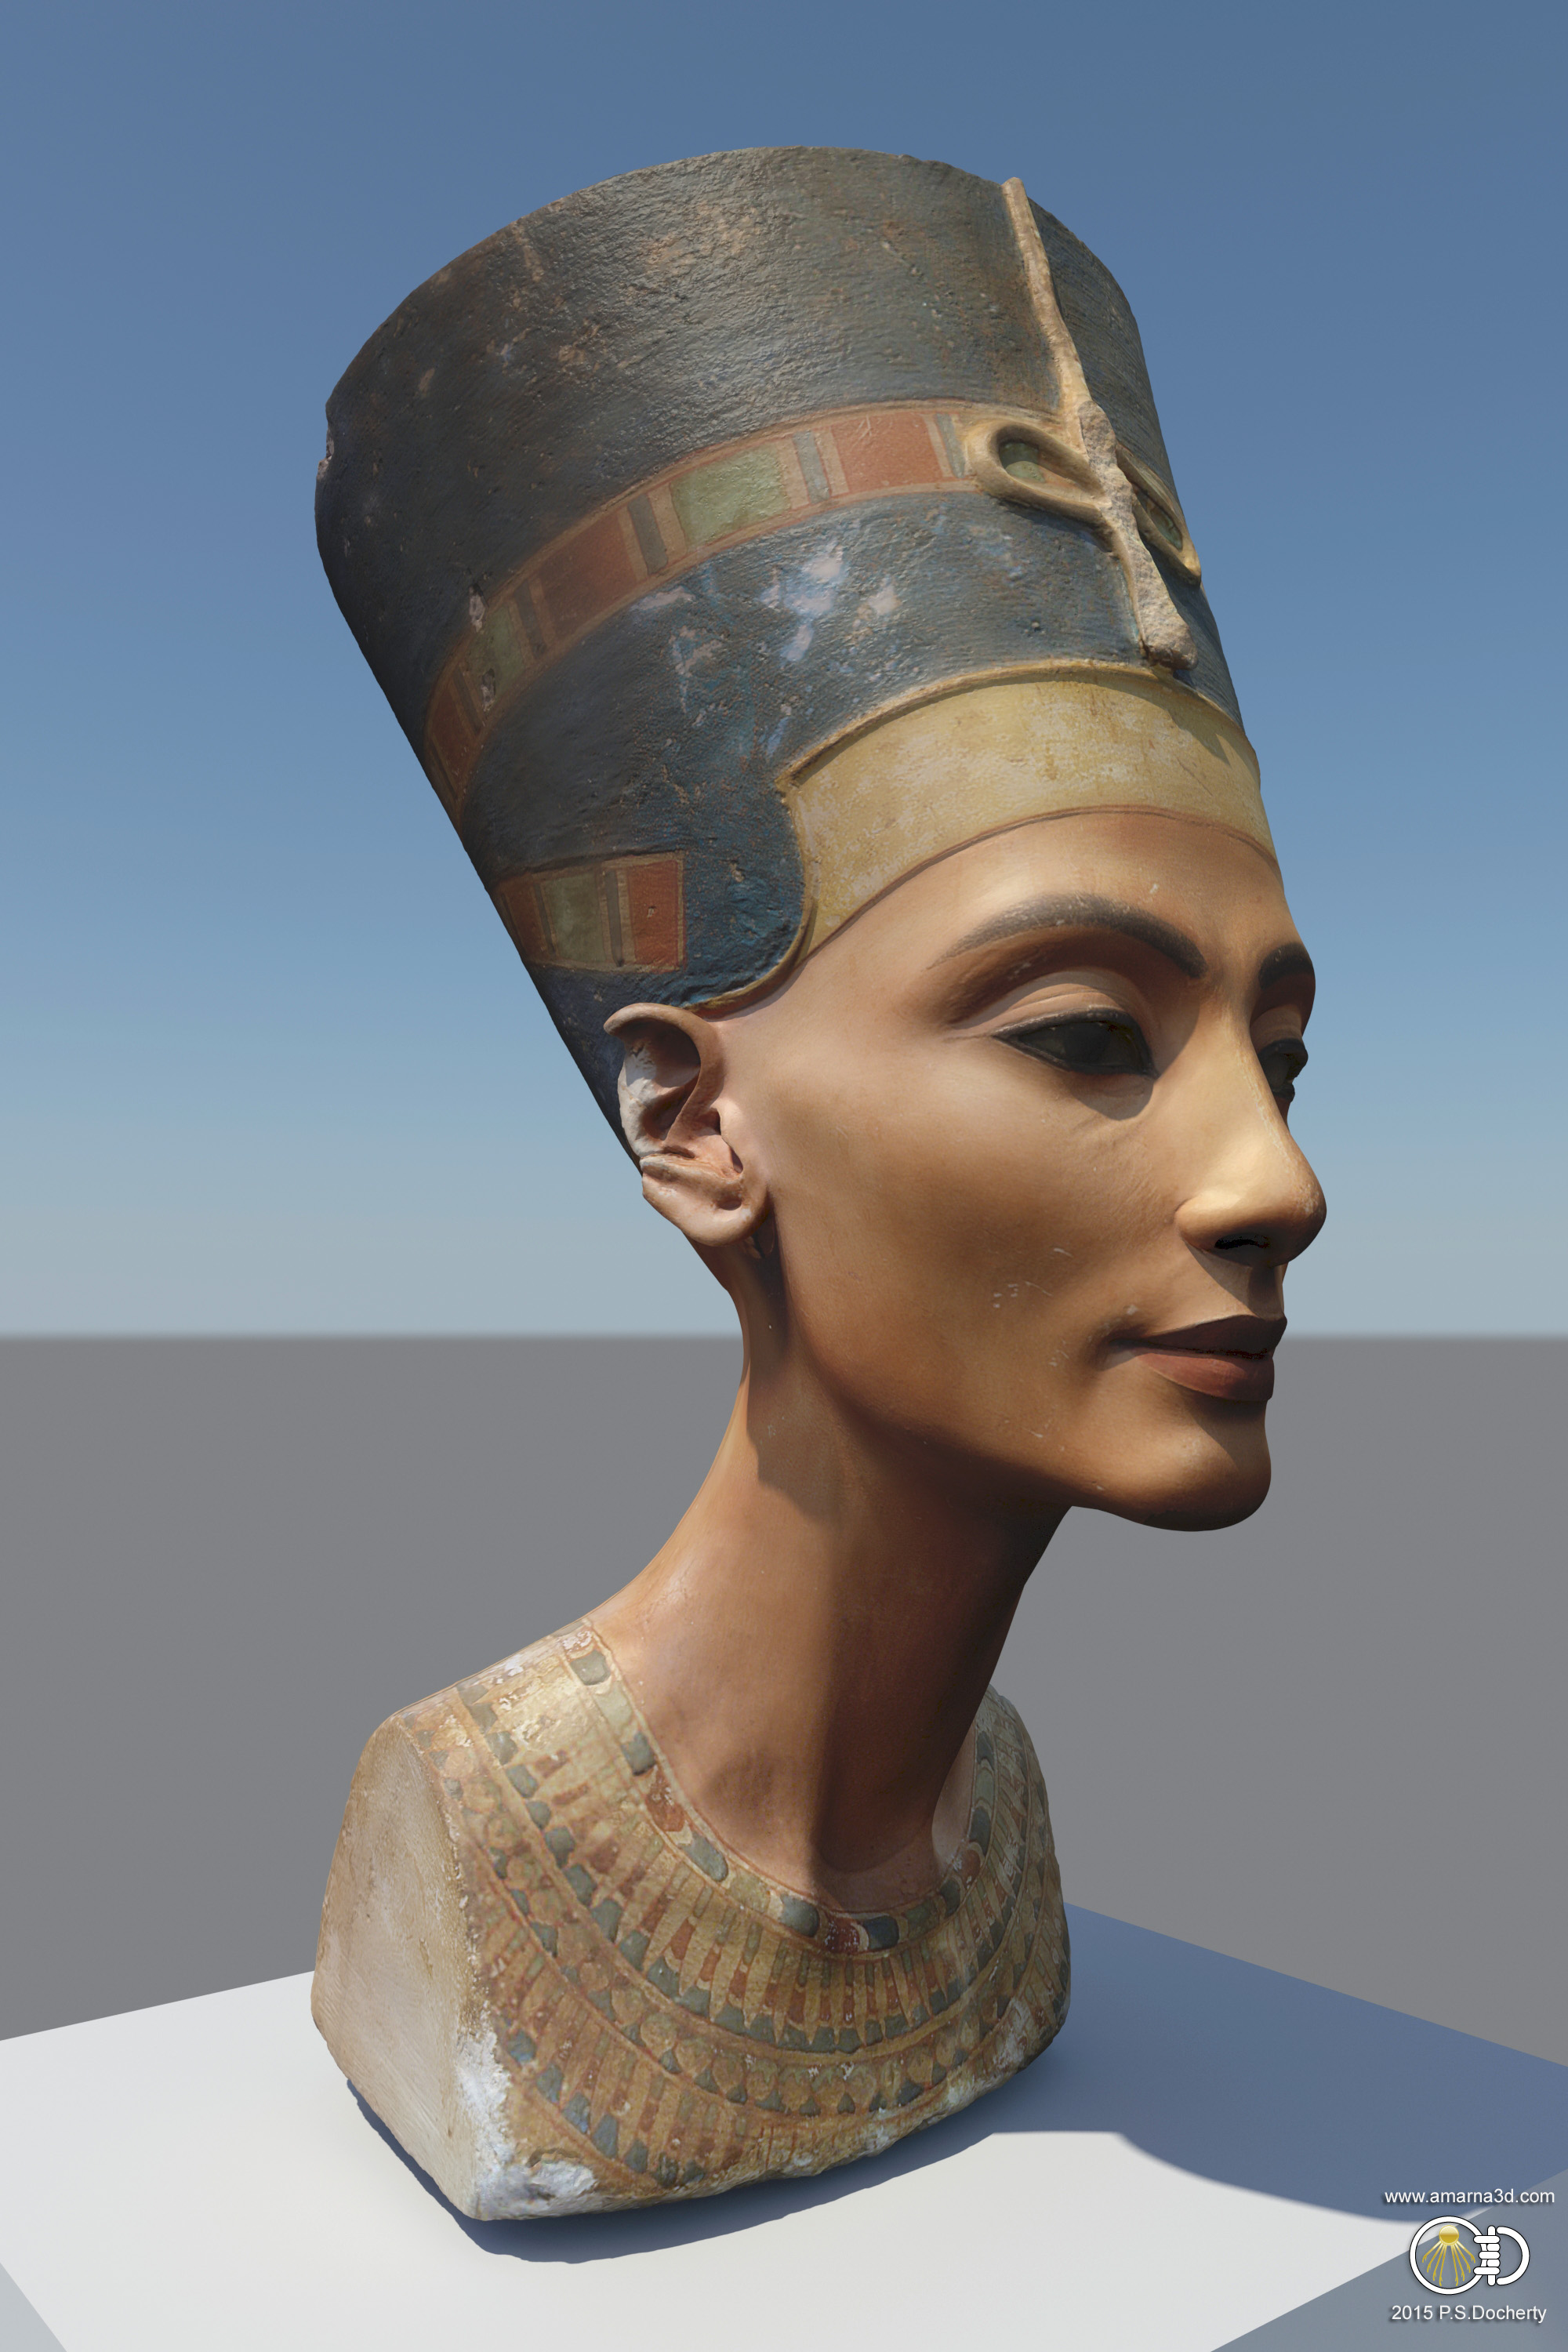 NefertitiHack Model re-textured by Paul Docherty www.amarna3d.com